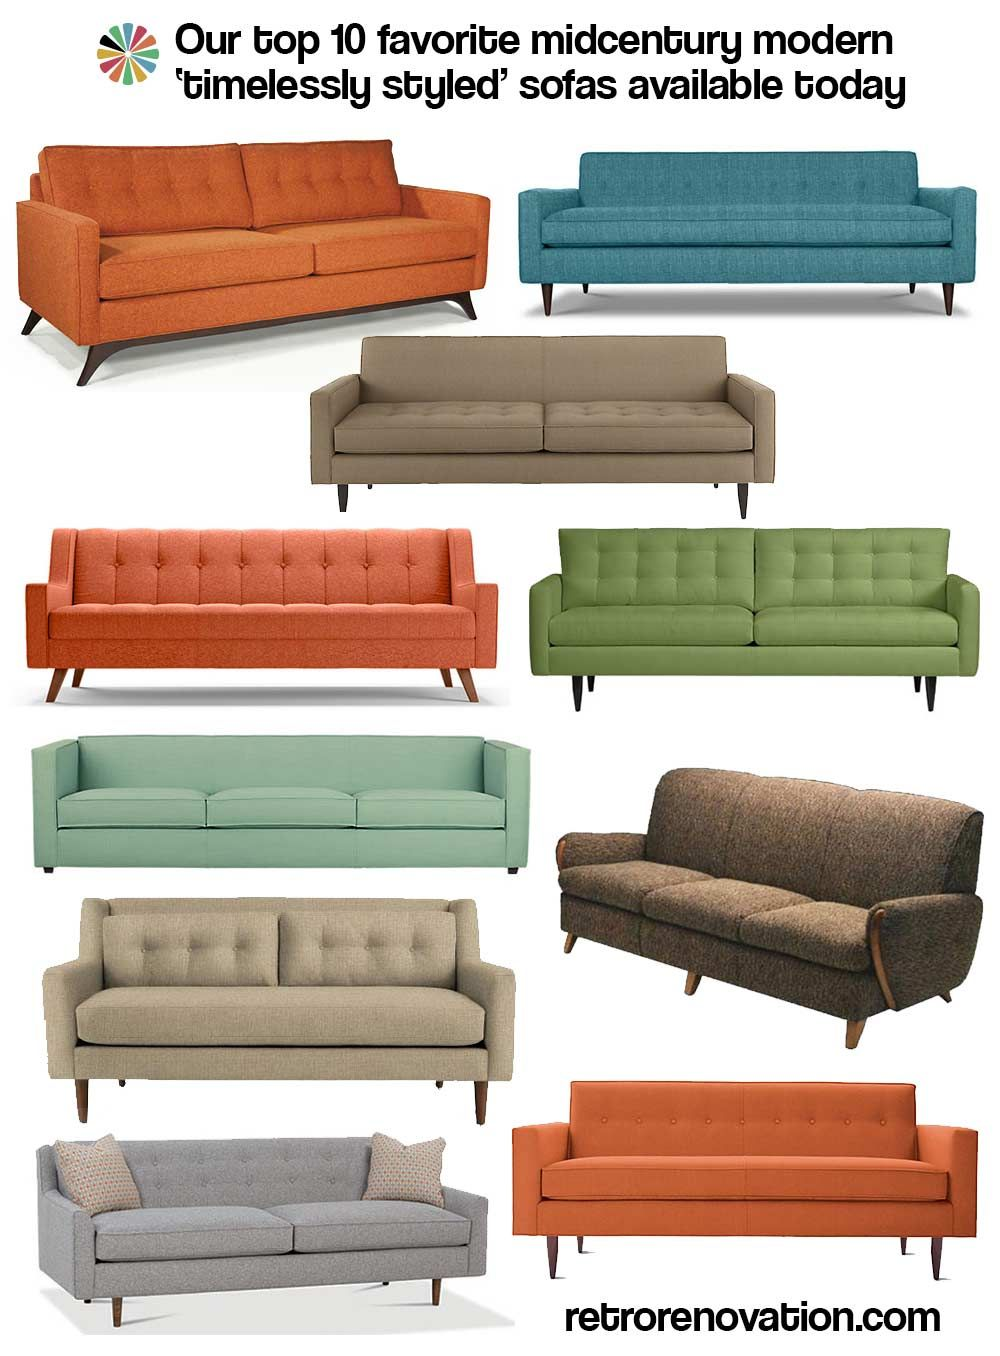 Sensational Kates Top 10 Midcentury Modern Sofas Available Today Pabps2019 Chair Design Images Pabps2019Com